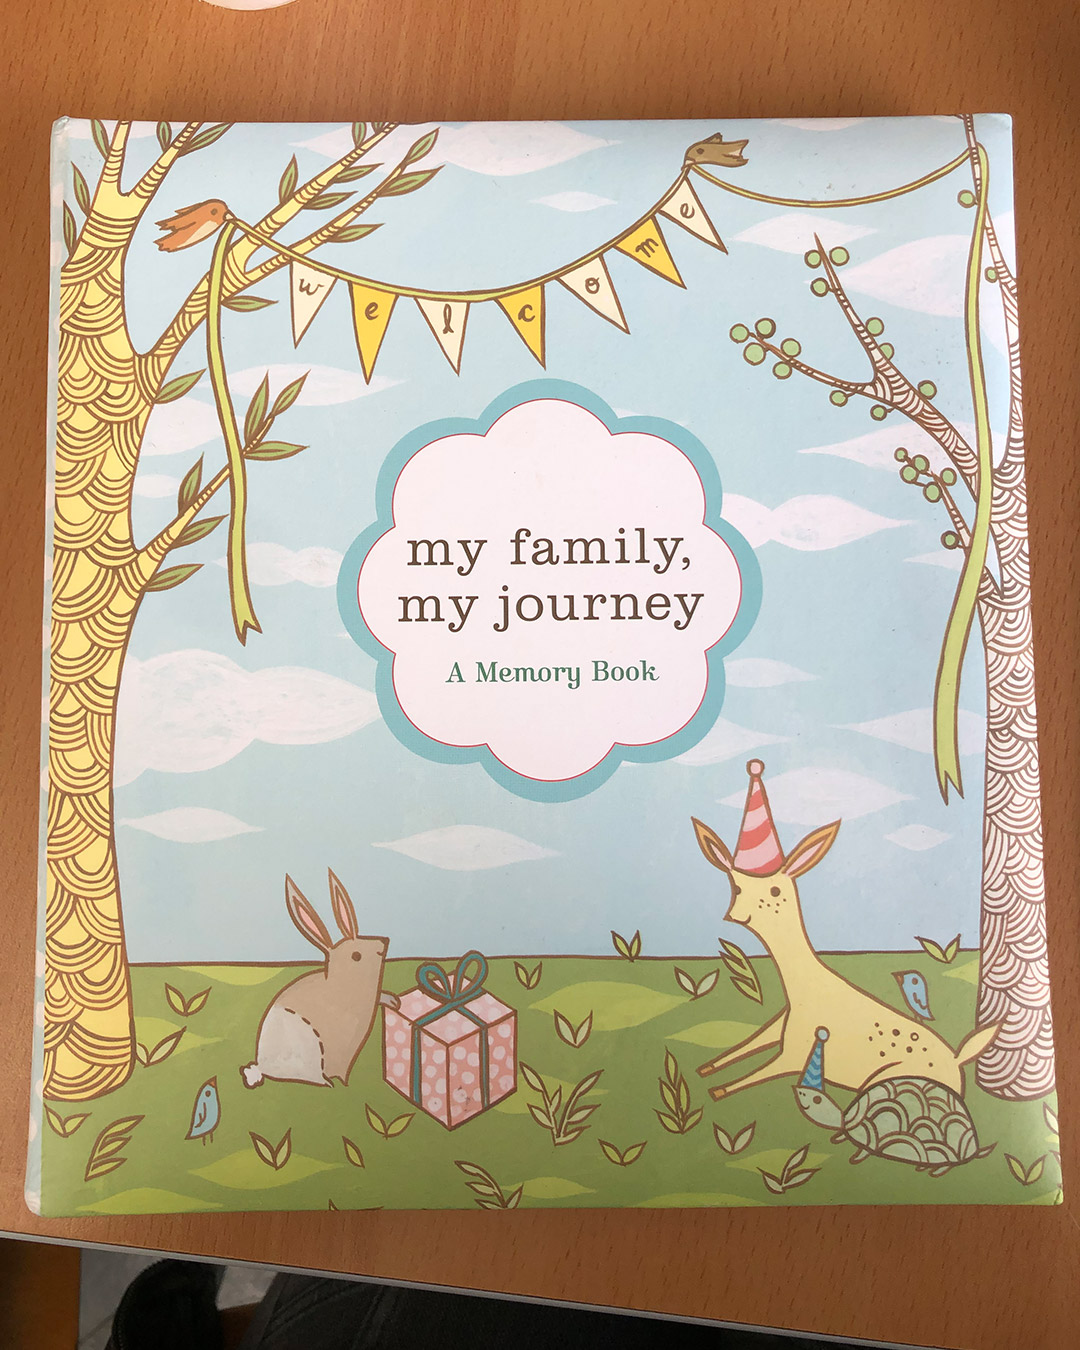 My Family, my journey A memory book